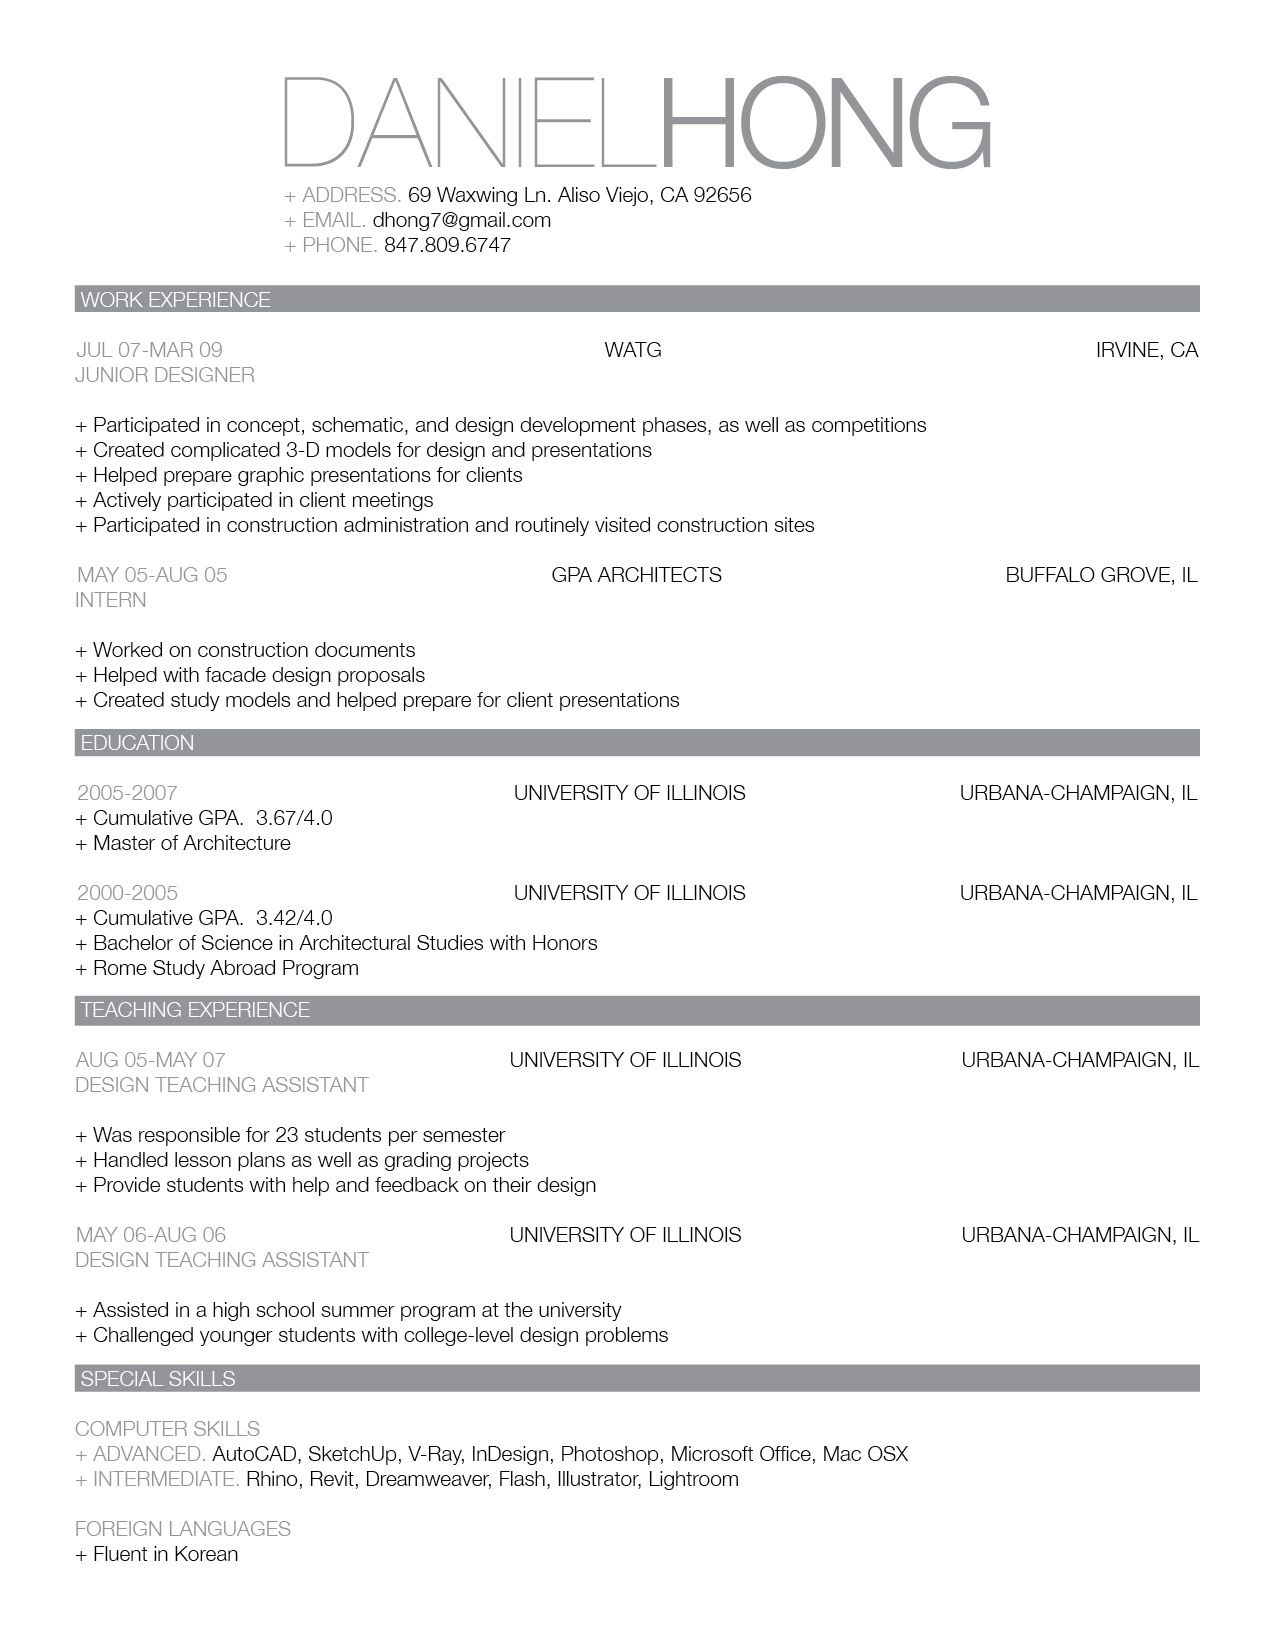 updated cv and work sample best resume templateresume - Good Template For Resume